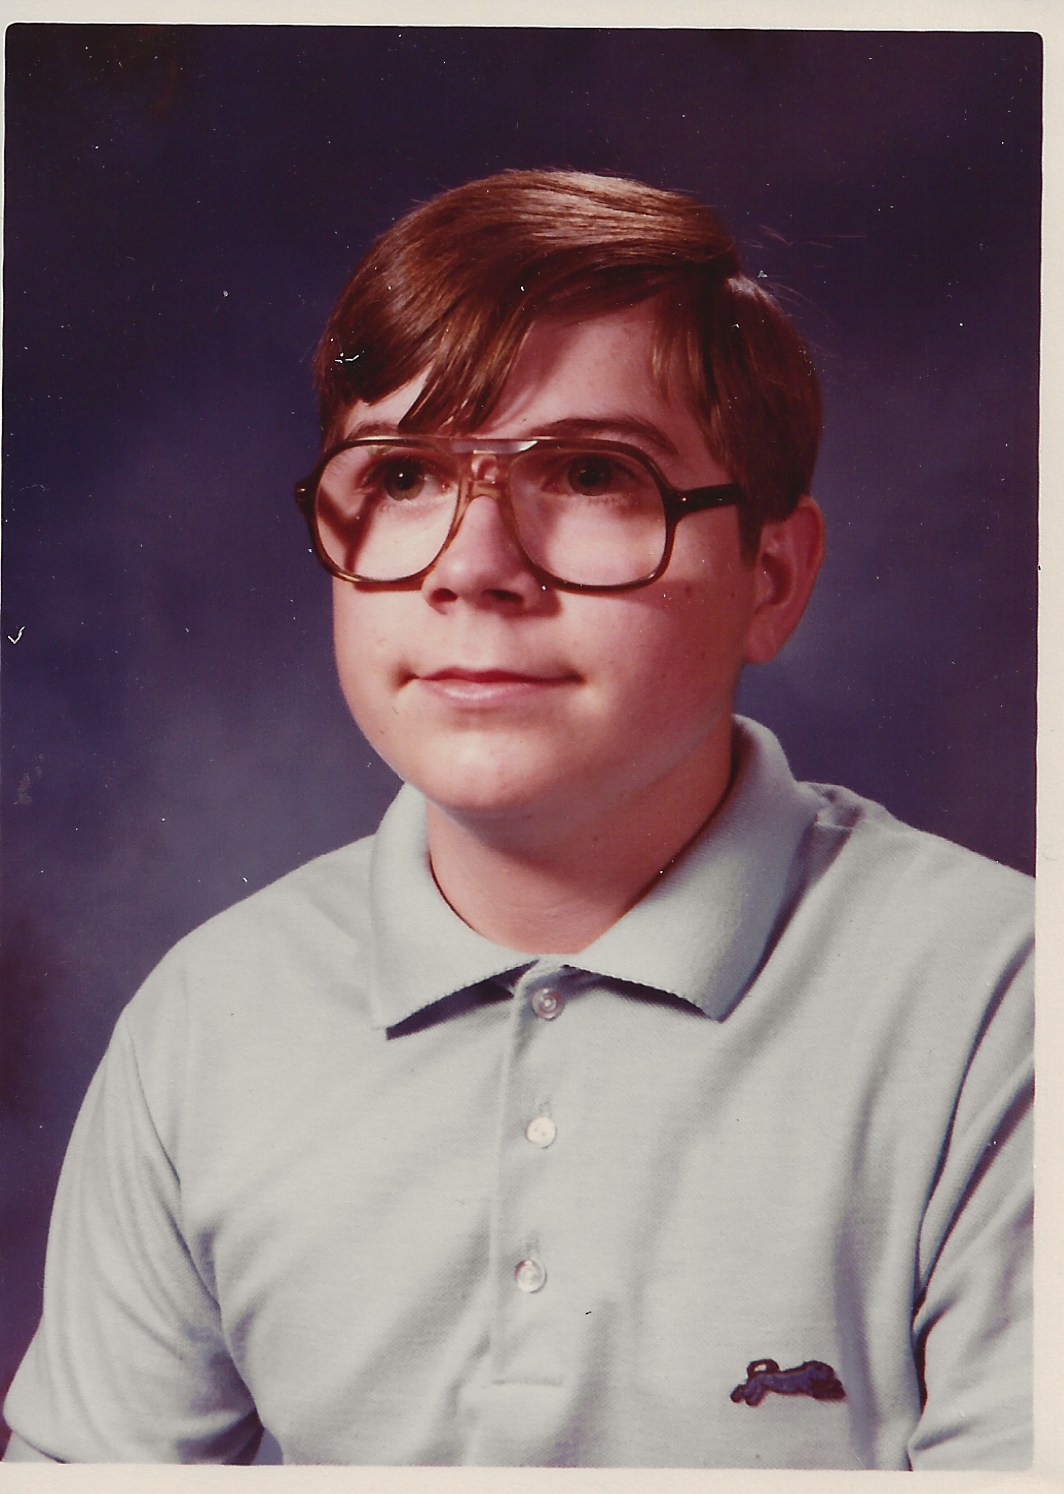 Joe school pic 1979